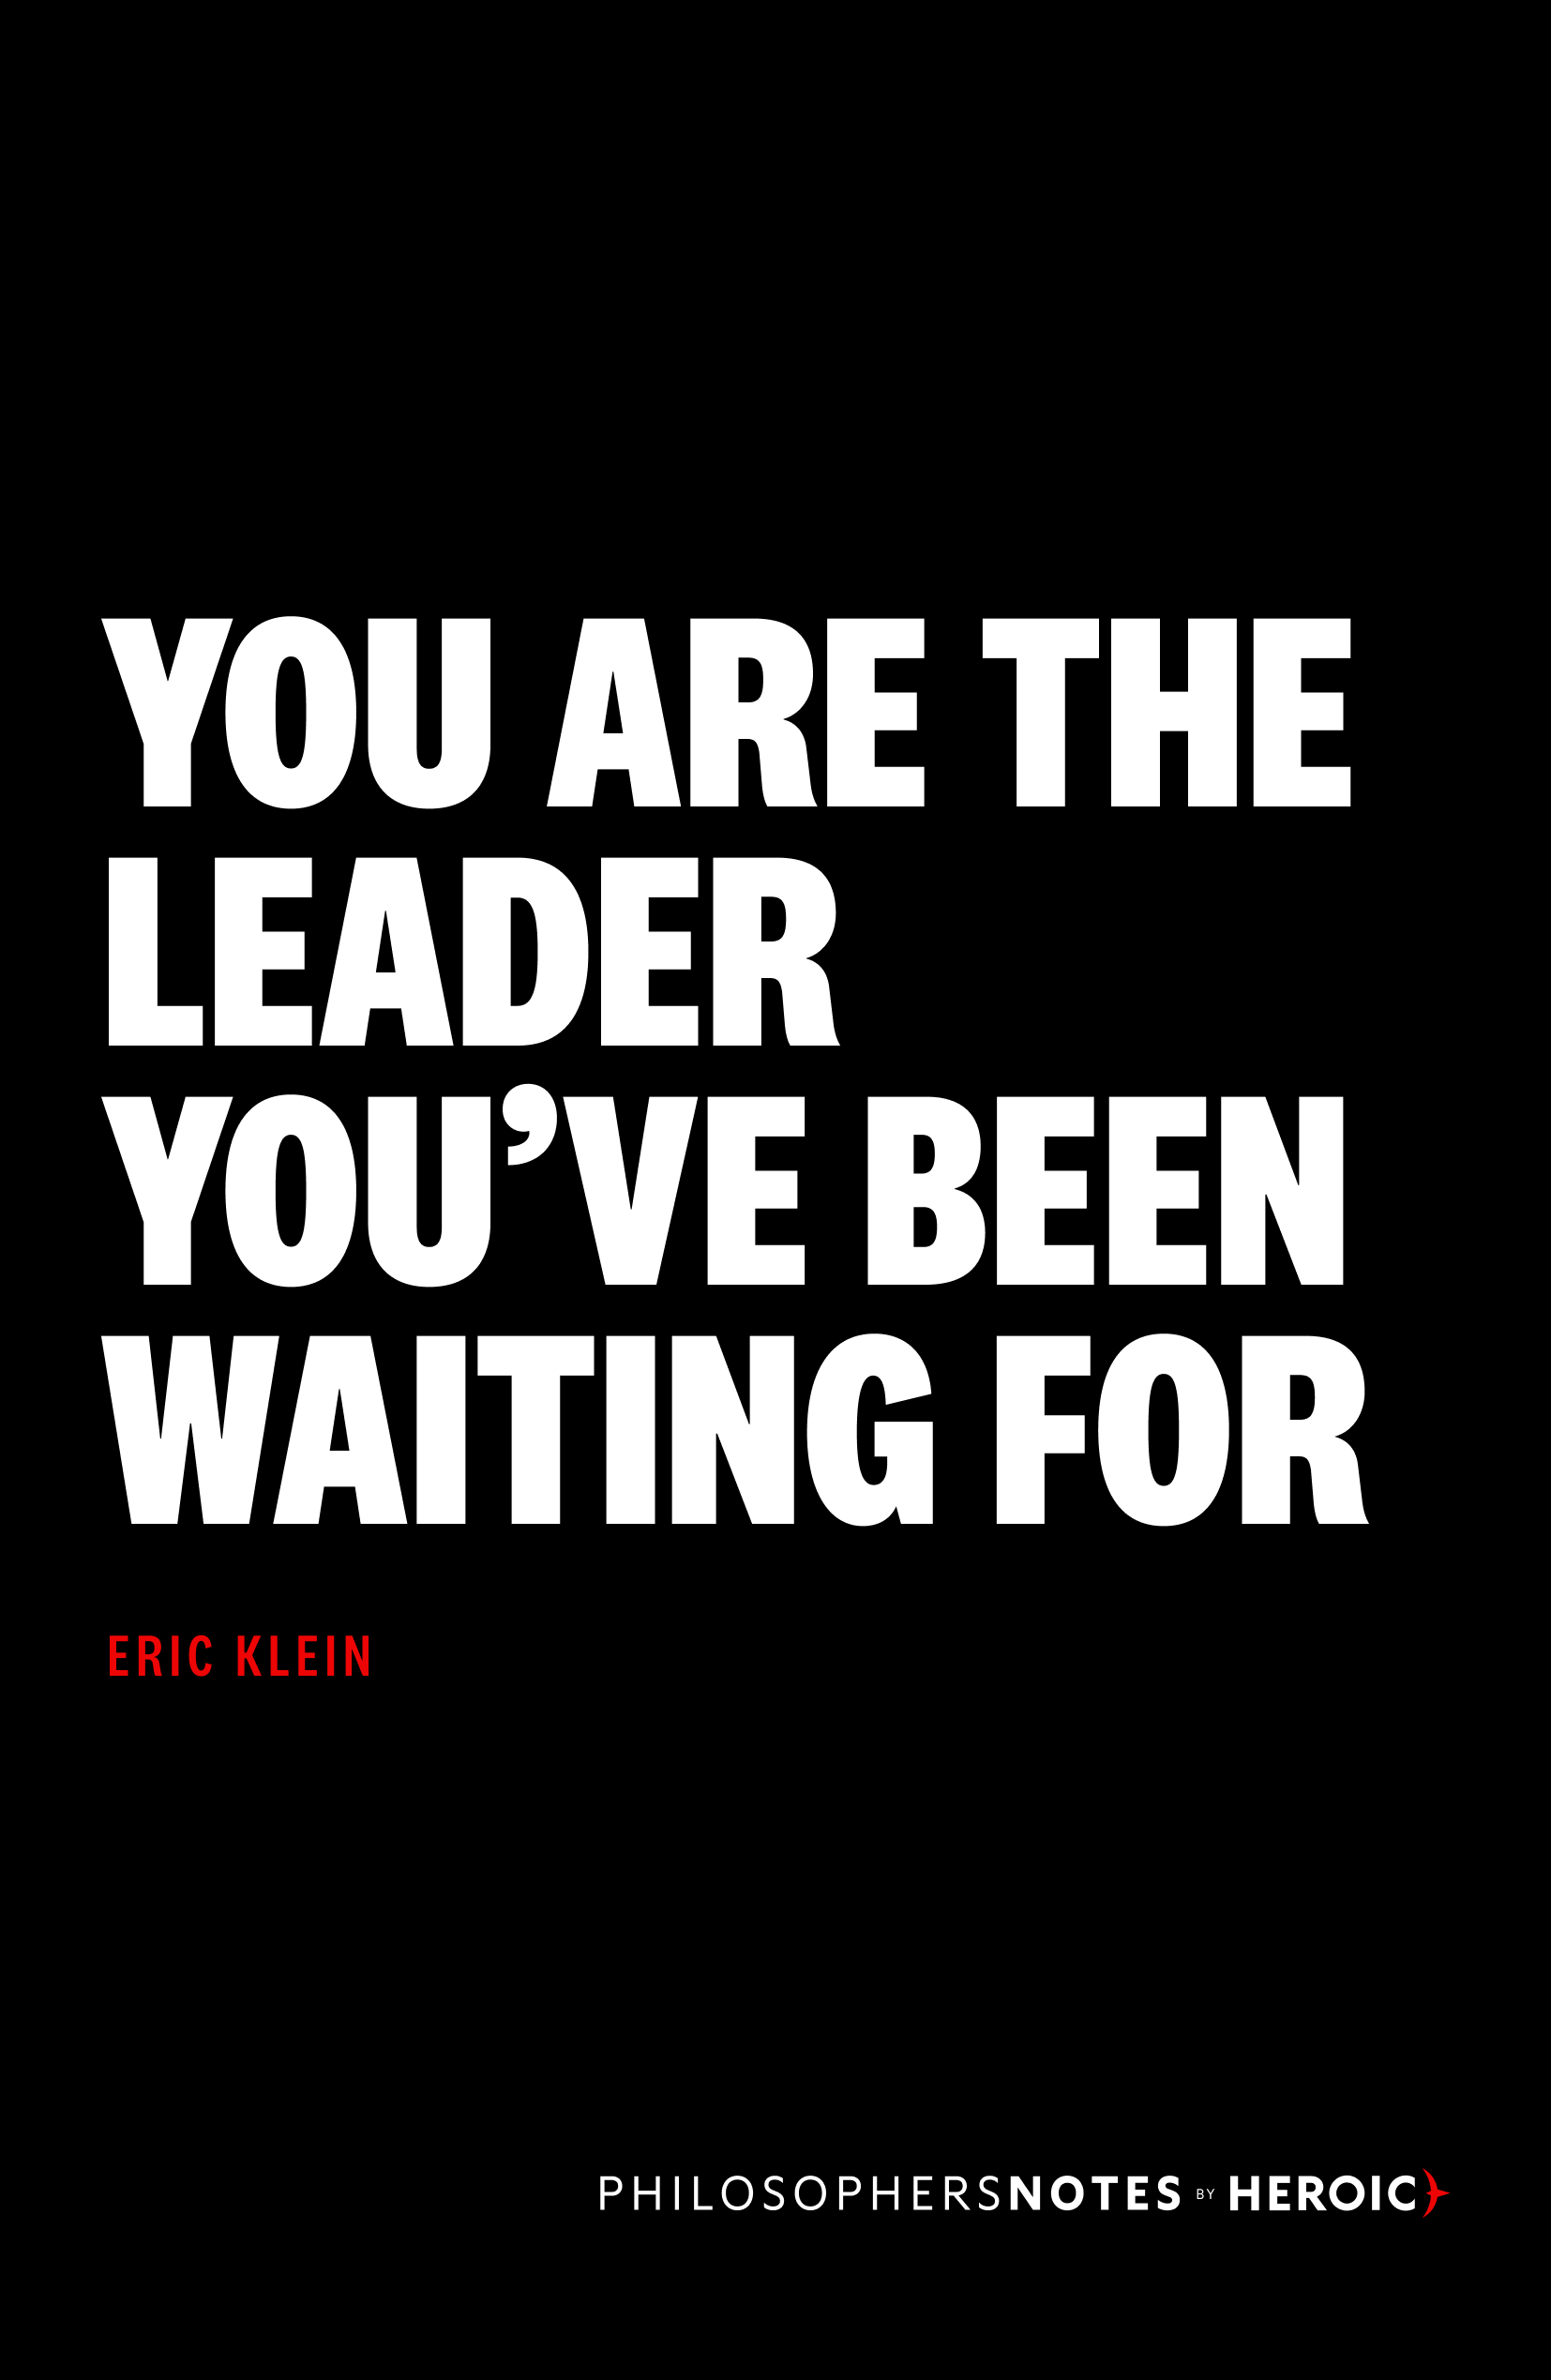 You Are the Leader You've Been Waiting For